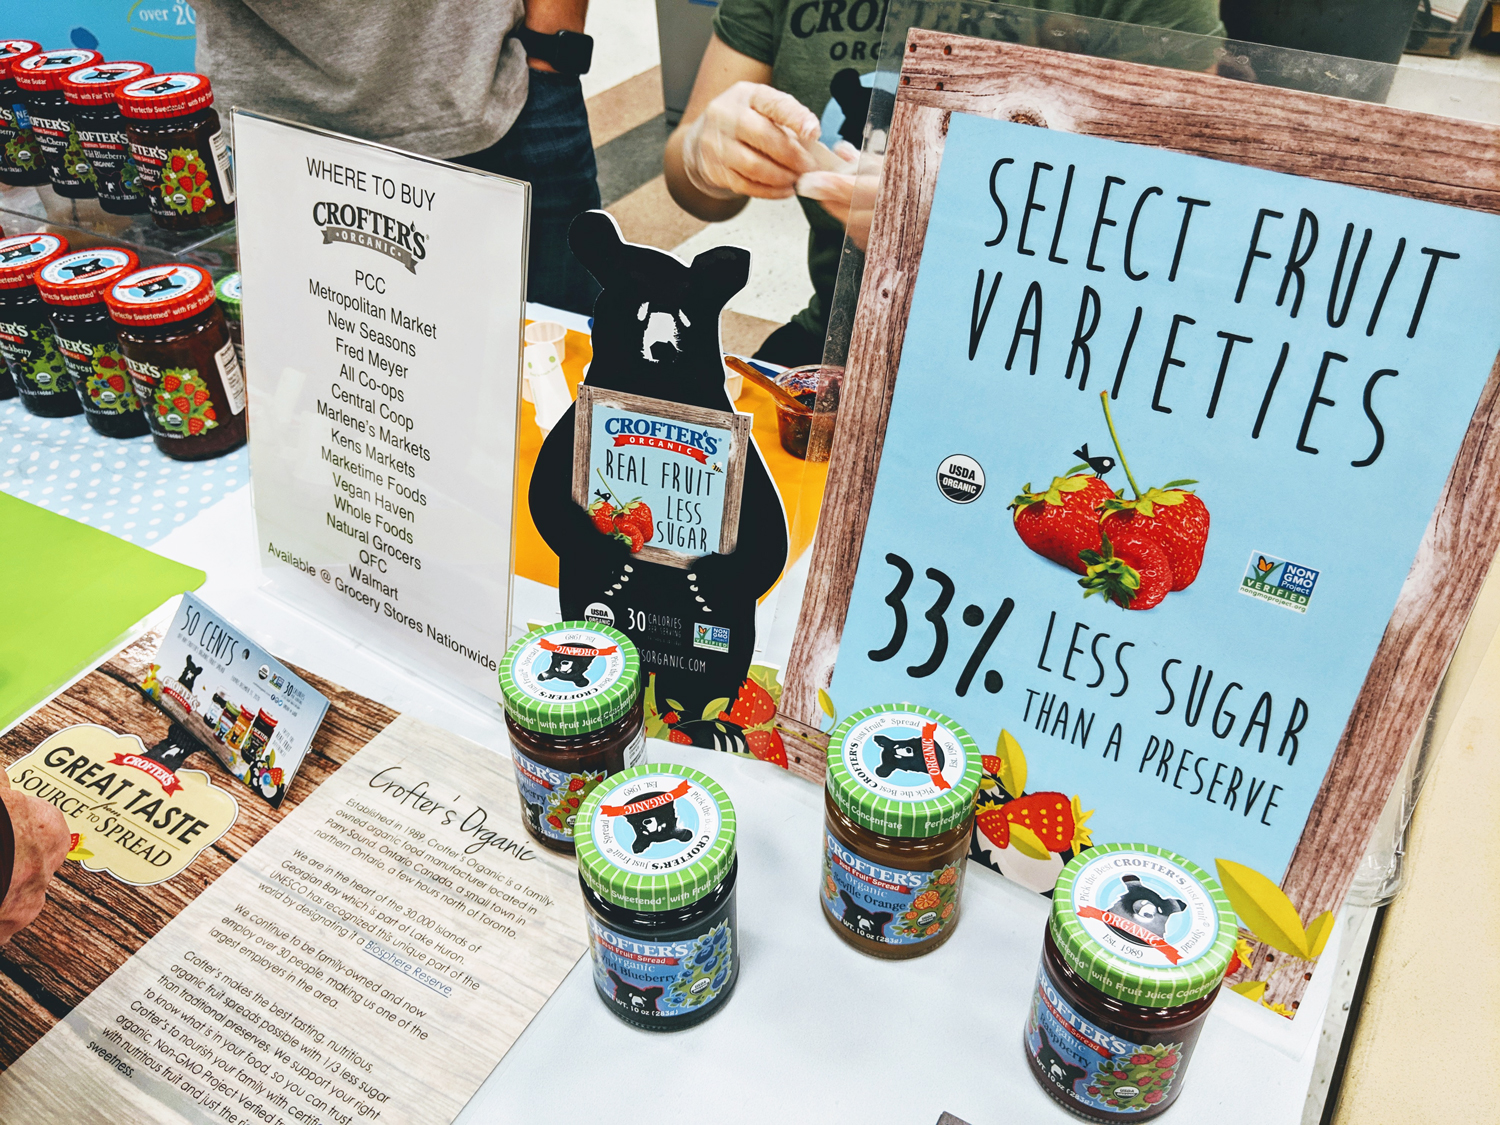 Seattle VegFest 2019: The Food | OMventure.com